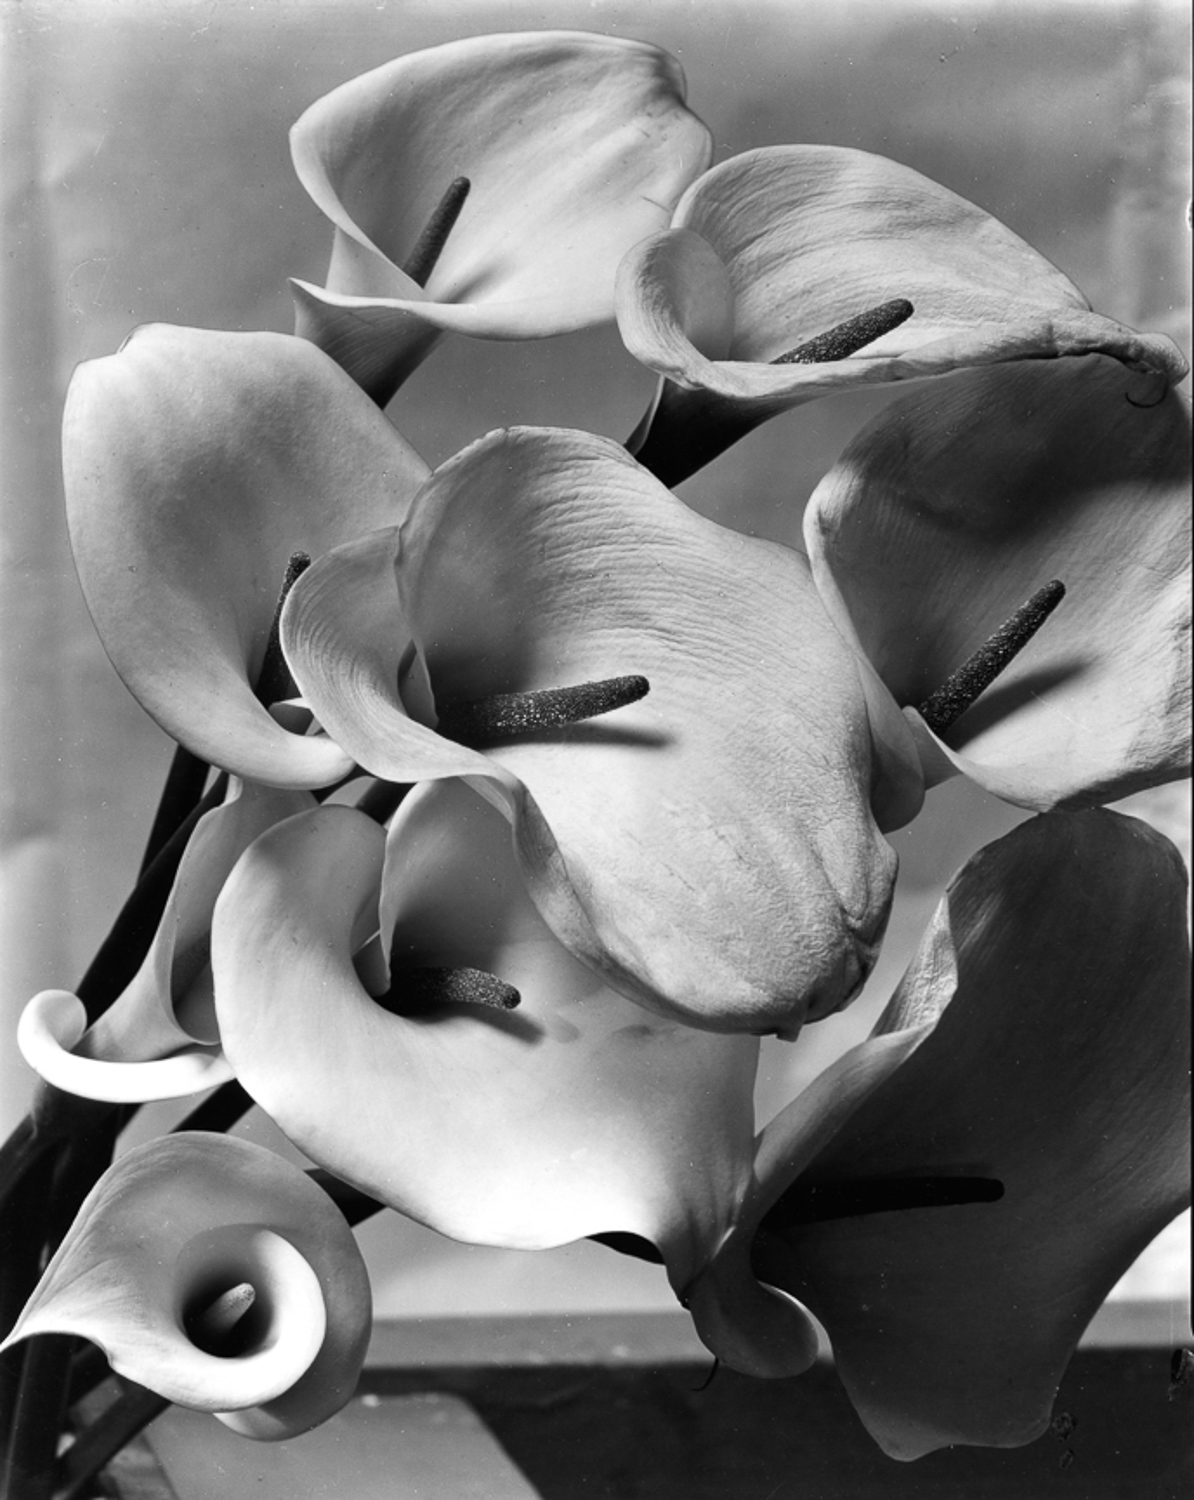 imogen-cunningham-masters-series-digital-photography-school-adam-welch-3